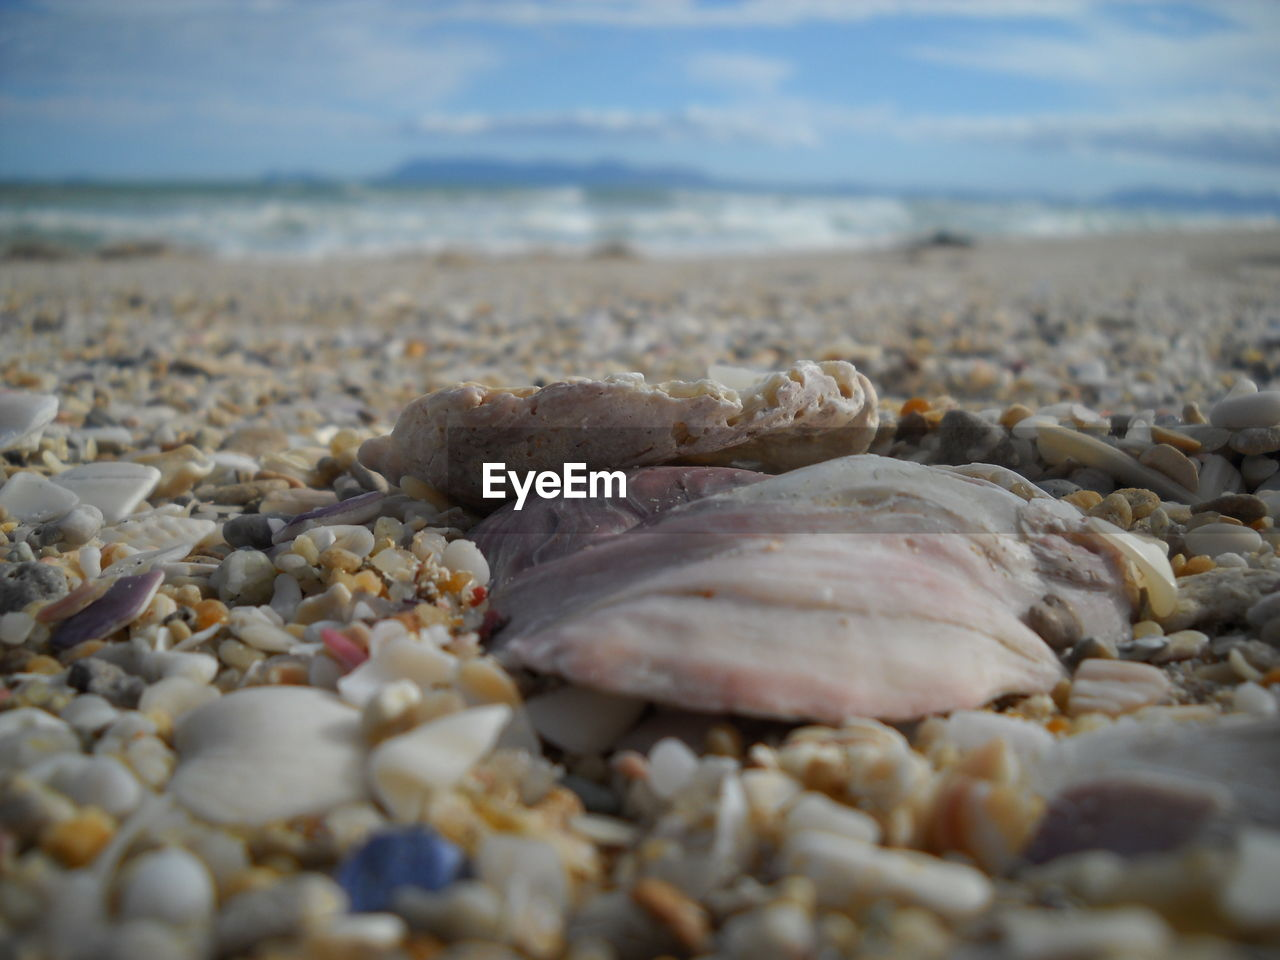 beach, selective focus, no people, land, sea, day, close-up, shell, stone, large group of objects, water, pebble, solid, rock, nature, seashell, beauty in nature, outdoors, animal, animal wildlife, surface level